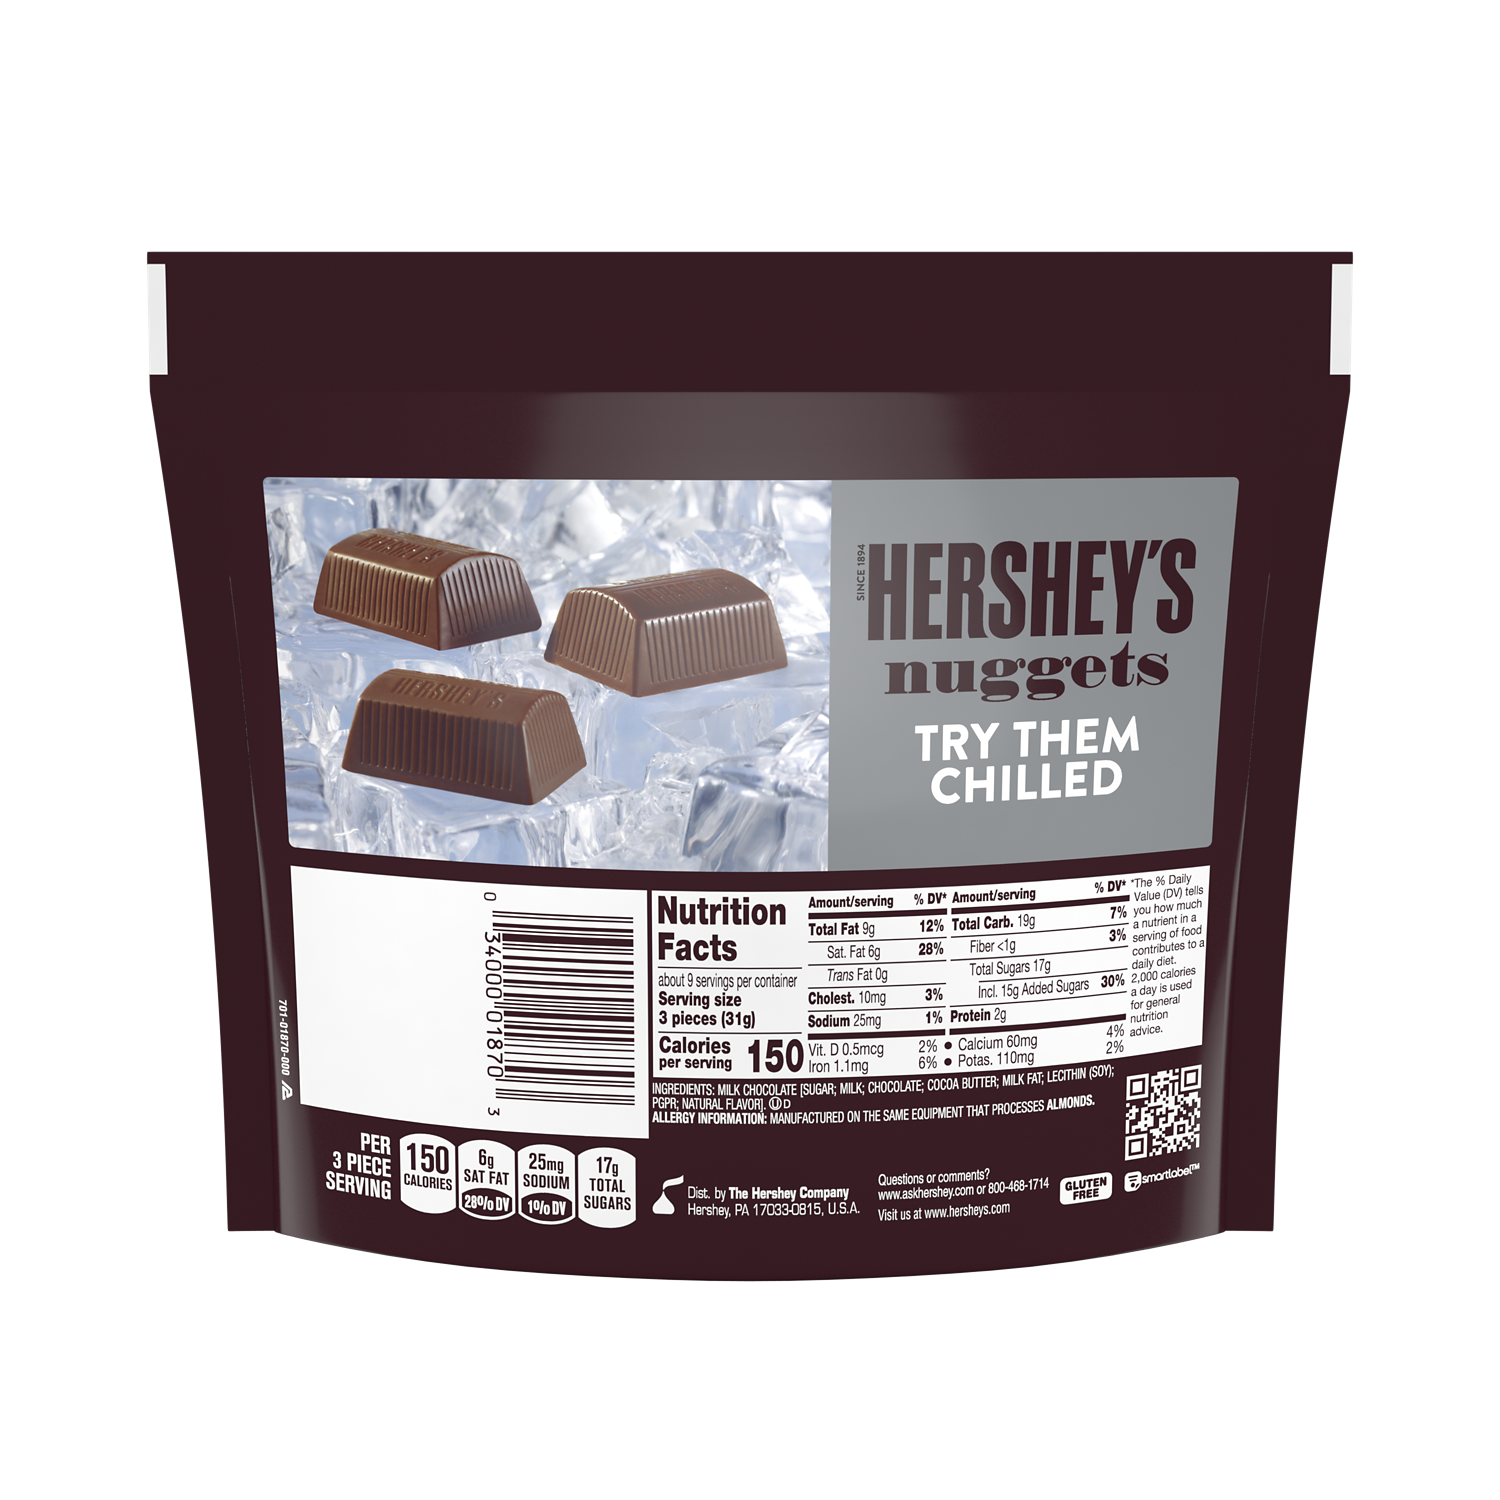 HERSHEY'S NUGGETS Milk Chocolate Candy, 10.2 oz pack - Back of Package